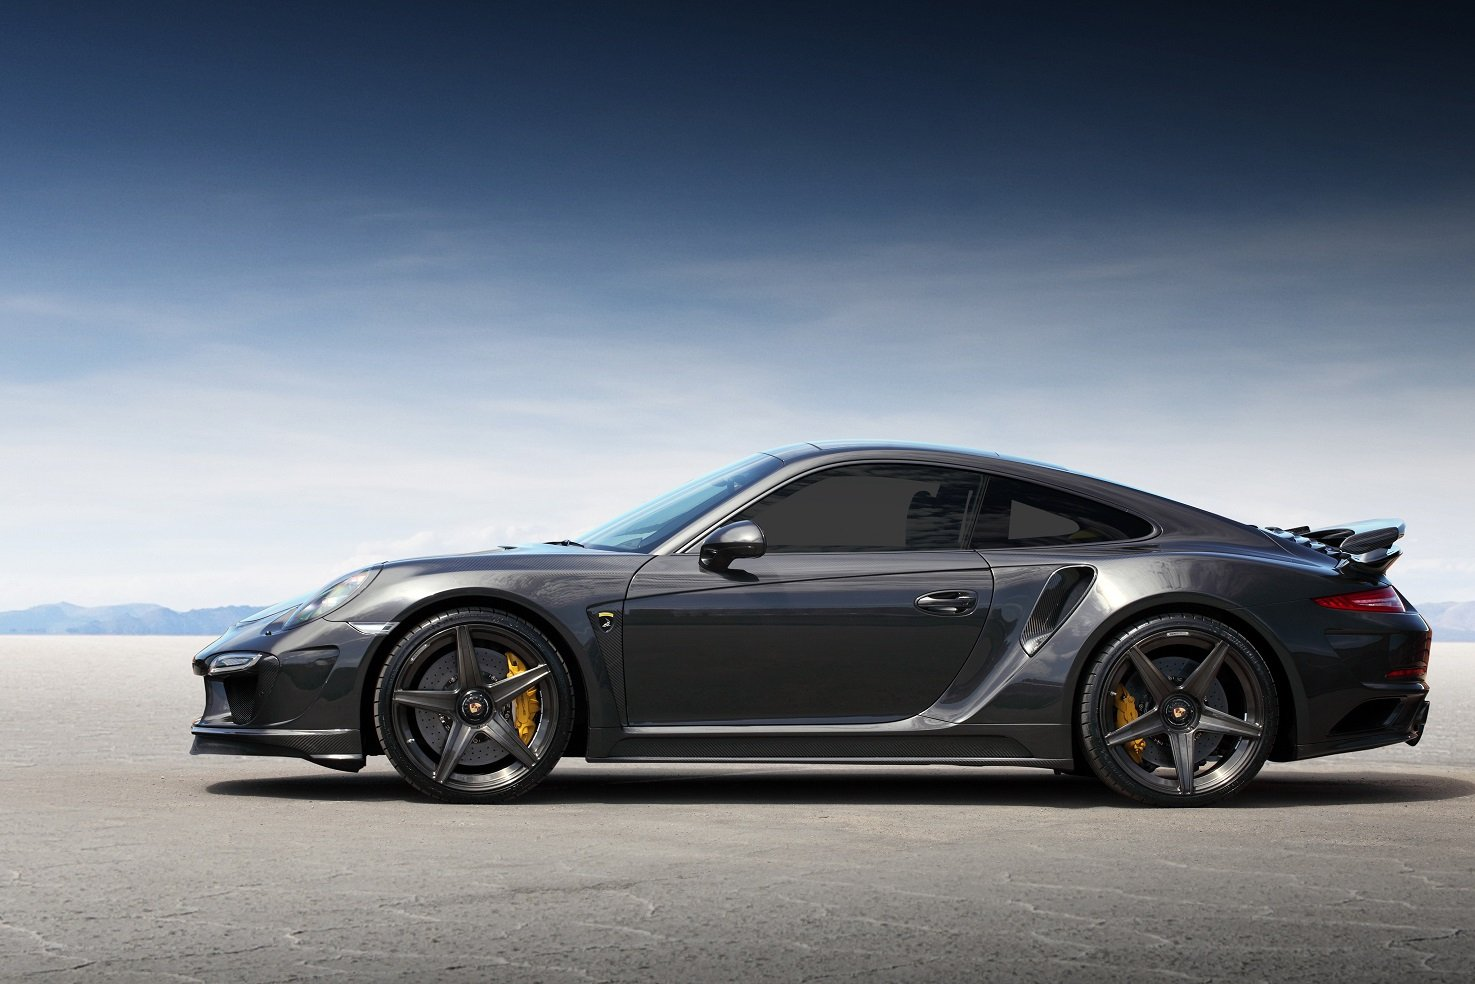 topcar porsche 911 turbo stinger gtr carbon edition cars modified 991 2015 wallpaper 1475x984 742066 wallpaperup